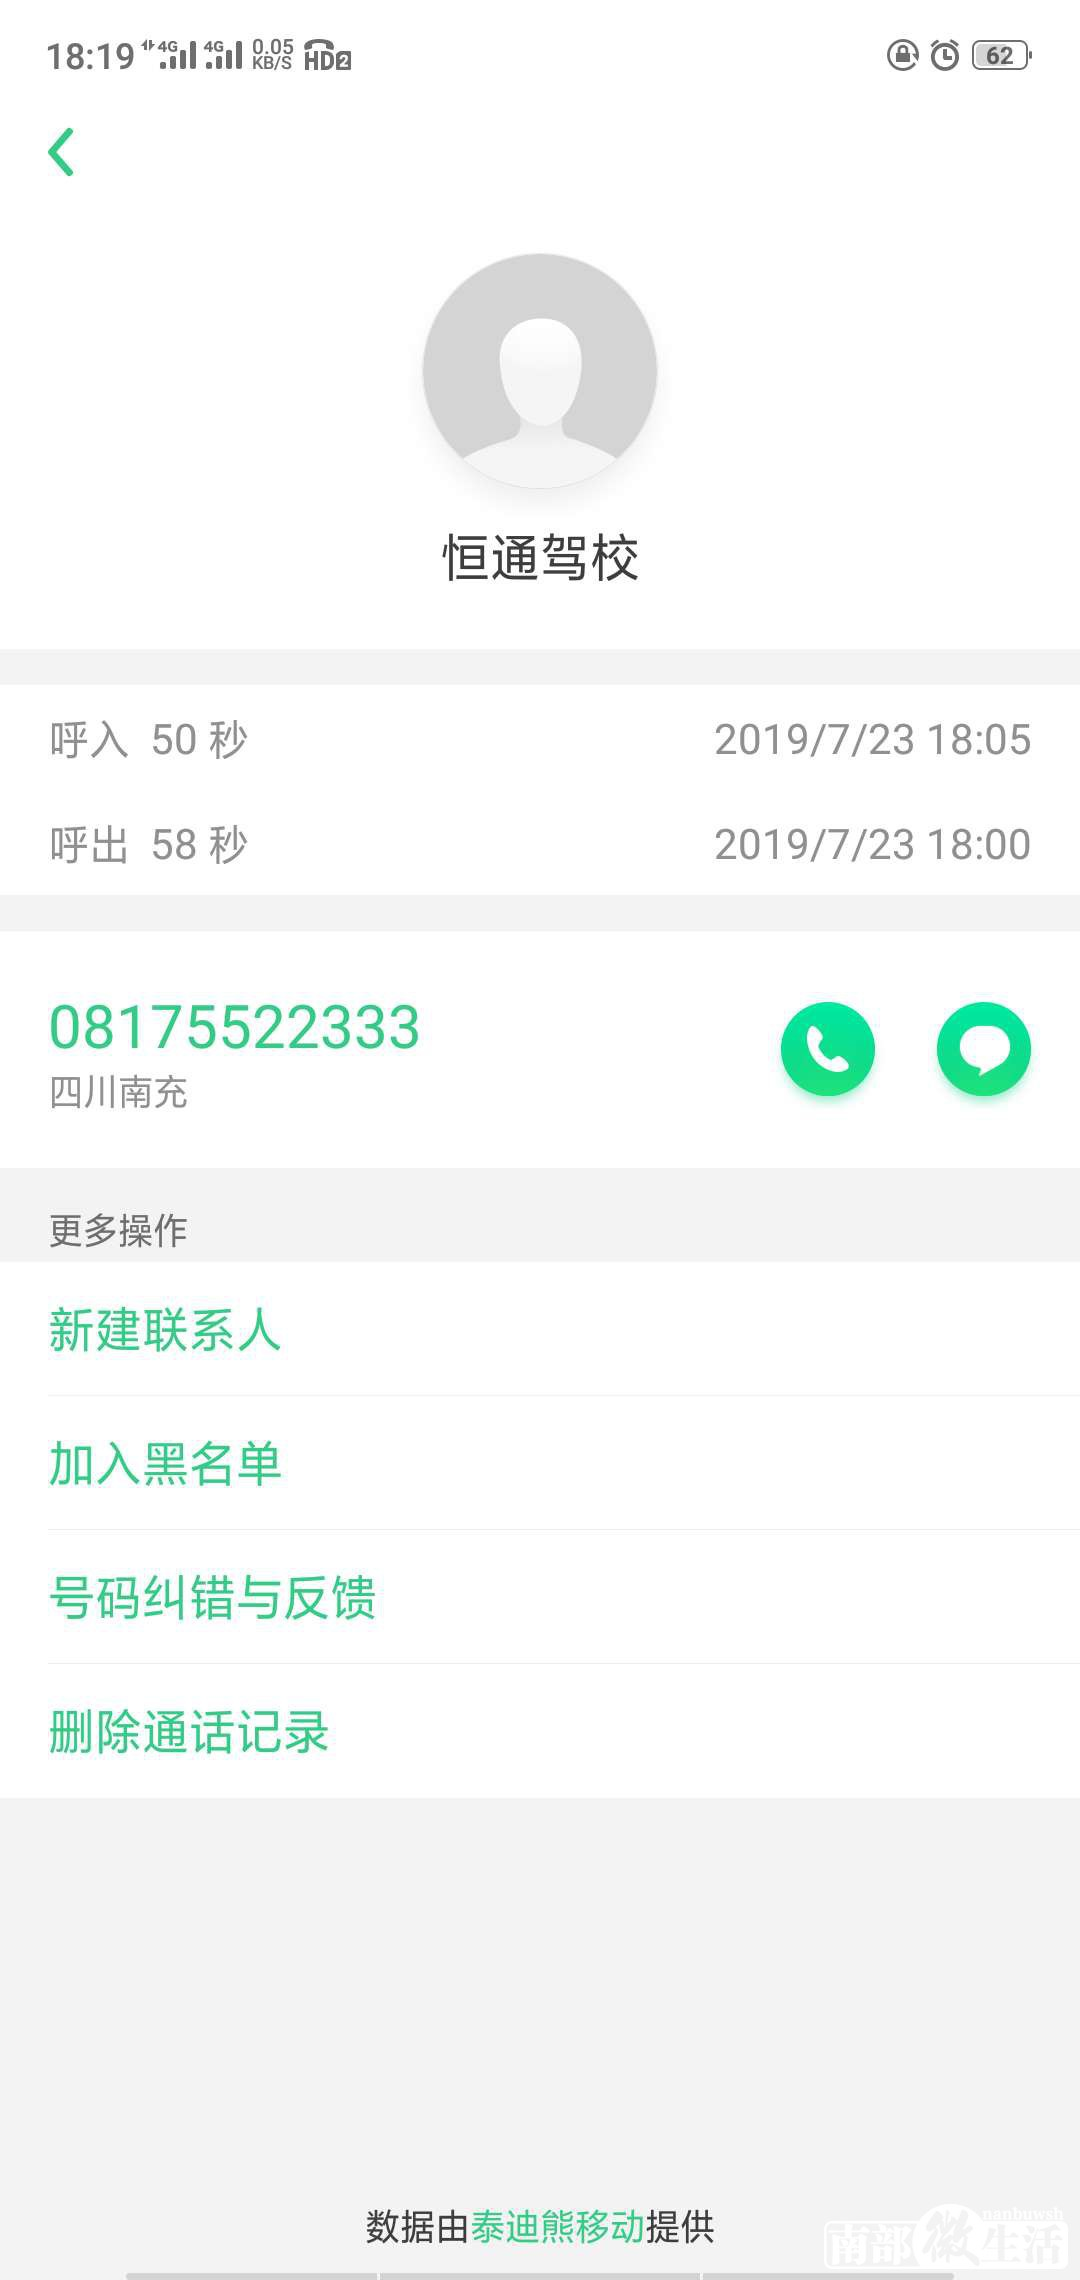 wechat_upload15638778385d36e1ce4951c